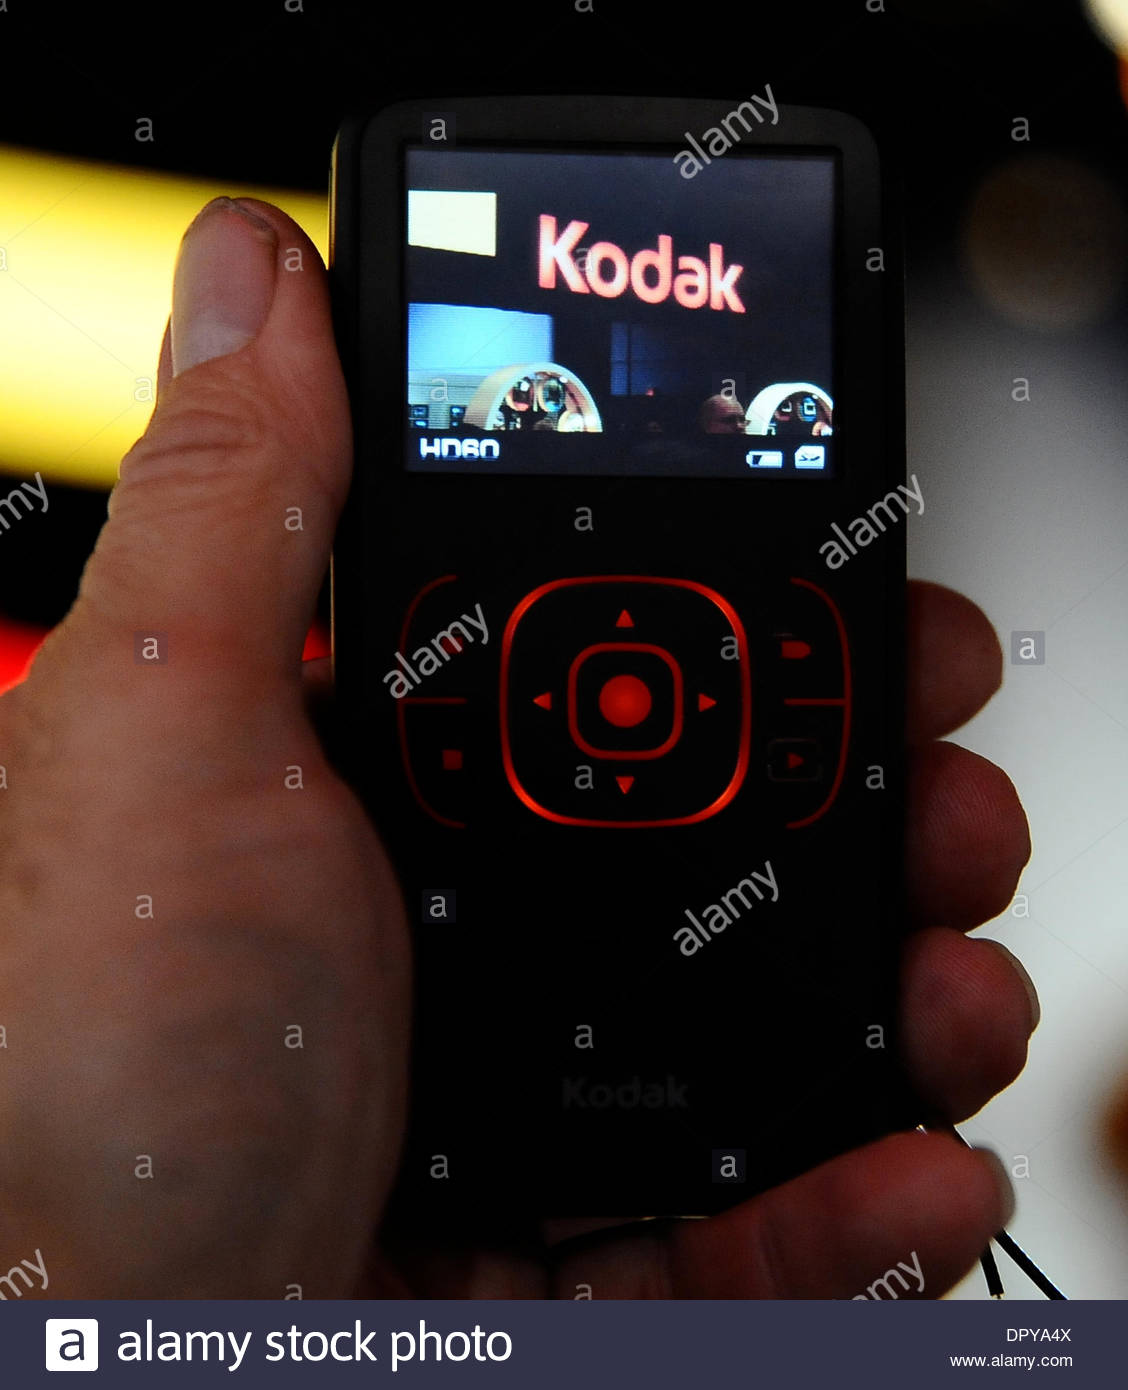 Jan 10, 2009 - Las Vegas, Nevada, USA - Kodak shows their new ZX1 pocket HD video camera that shoots upto 60 fps and runs up to 10hrs, on display during the 3rd day of the 2009 Consumer Electronics Show (CES) in Las Vegas NV, Jan 10,2009. (Credit Image: © Gene Blevins/Los Angeles Daily News/ZUMA Press) RESTRICTIONS: * USA Tabloids Rights OUT * - Stock Image